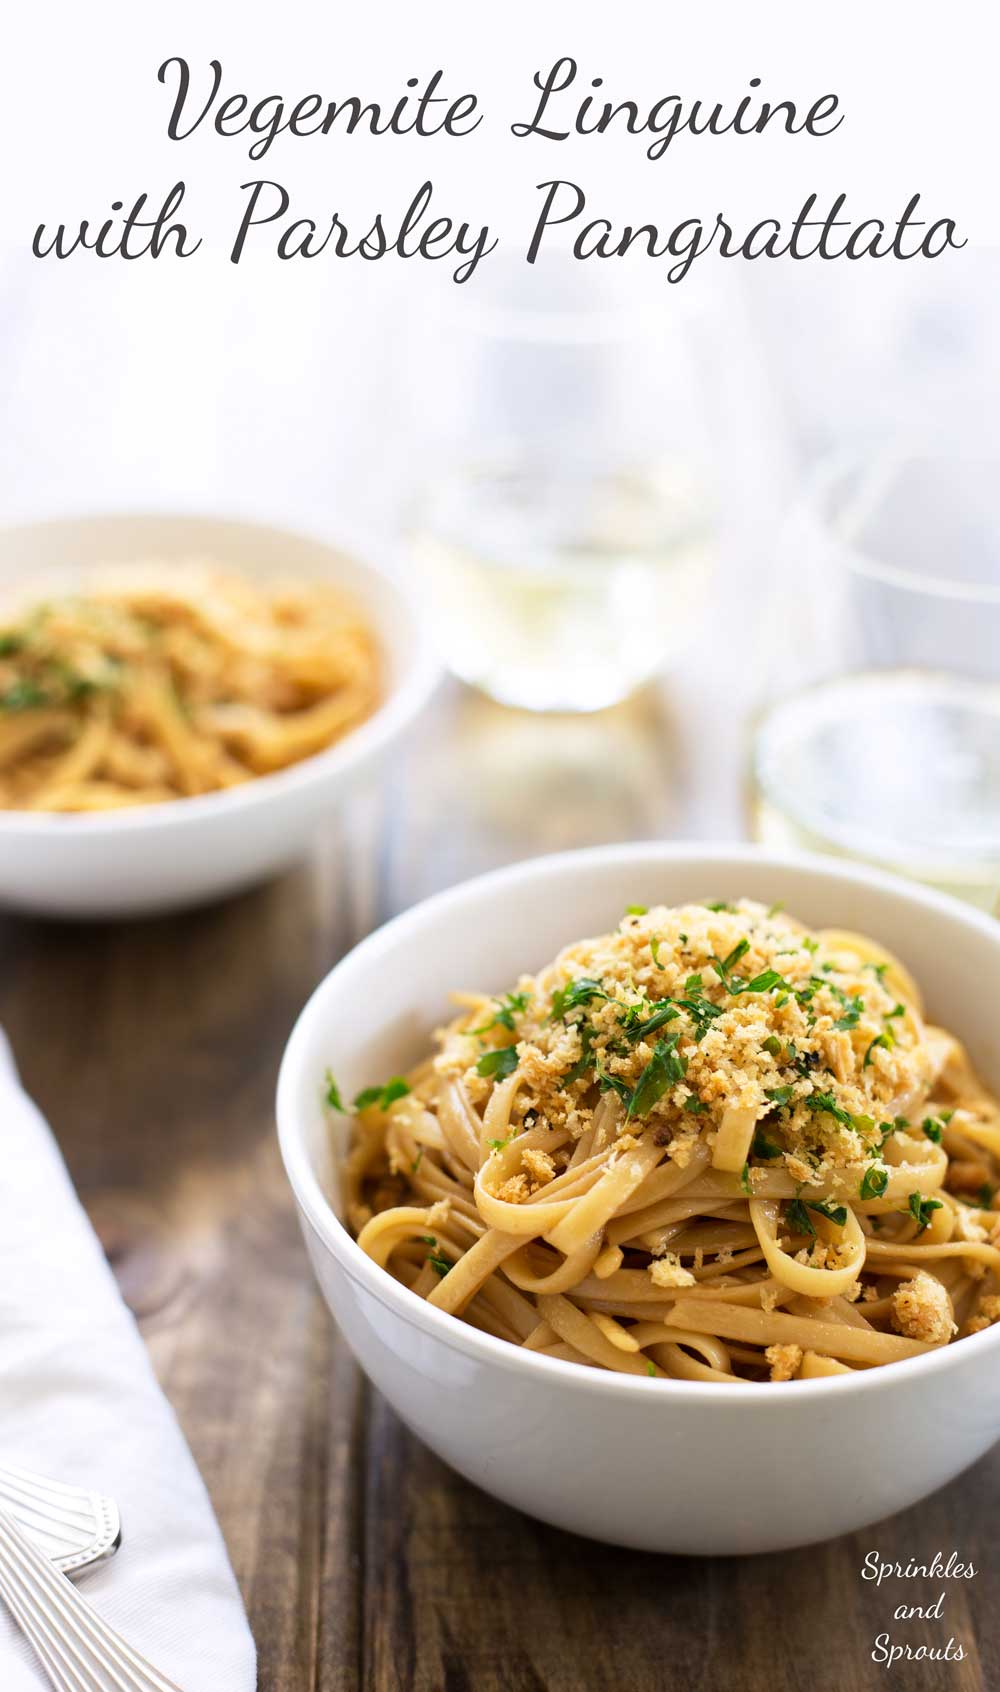 Vegemite Linguine with Parsley Pangrattato. An Italianised version of the Australian Vegemite on Toast. This is unusual but delicious. A great vegan pasta dish.